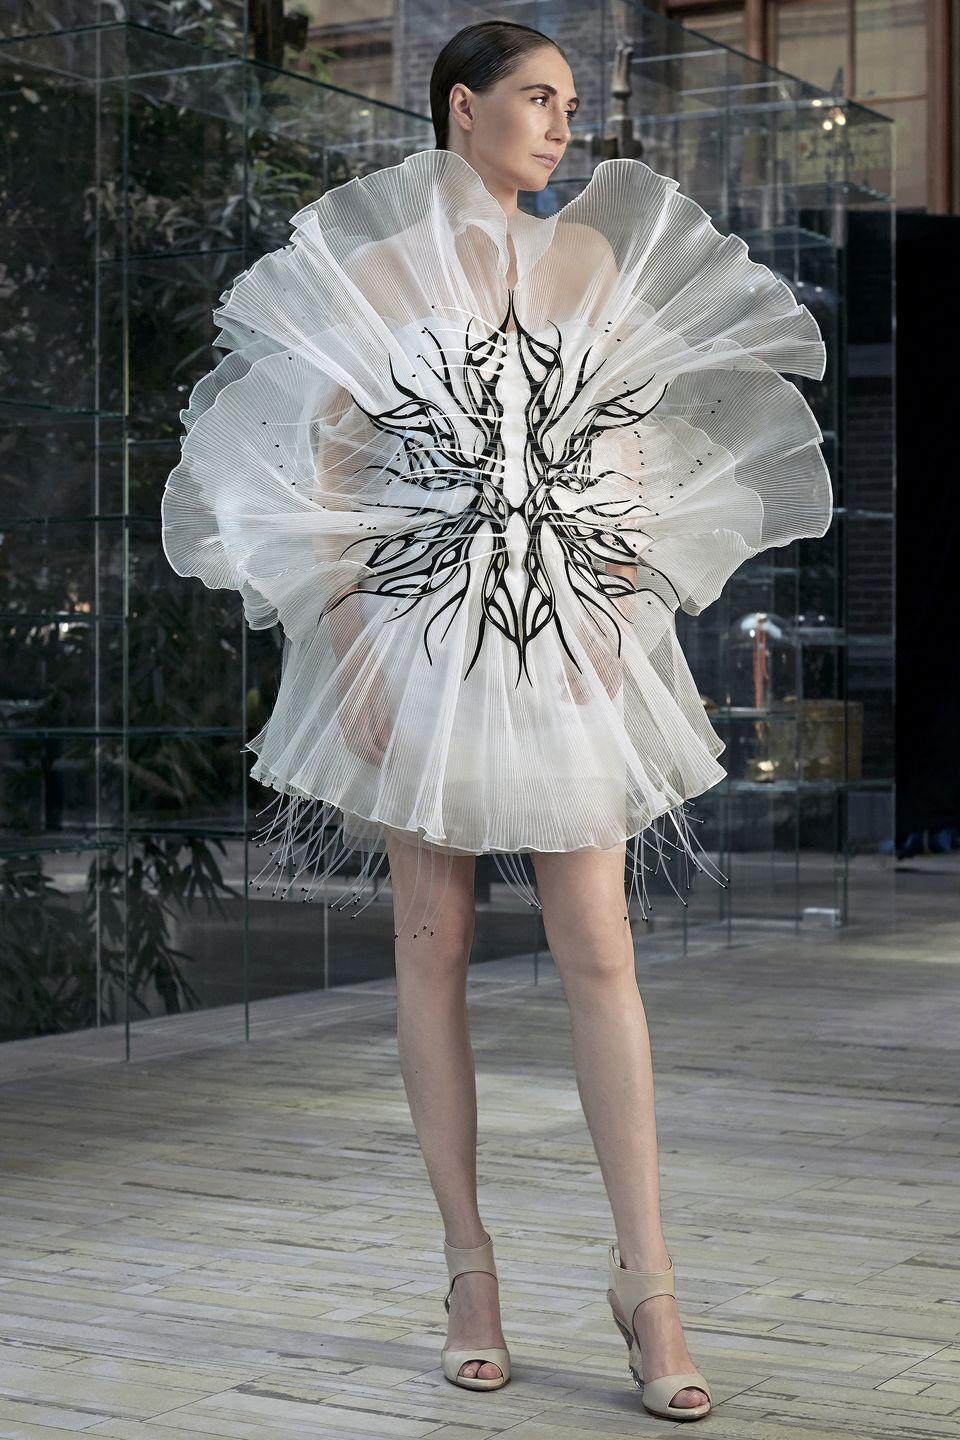 "<p>Iris van Herpen takes fashion to the next level, sourcing inspiration from artists who explore mathematics, technology, and symmetry in their oeuvres. And for the fall 2020 season, the Dutch designer is reinforcing this quality, creating a singular dress inspired by the work of Maurits Cornelis Escher, the celebrated graphic artist who counts Pulitzer Prize–winning scientists as fans. </p><p>Van Herpen specifically focuses on Escher's study on transformation and how reality can be warped through optics. In a film that stars <em>Game of Thrones</em> actress Carice van Houten, her hypothesis is put on full display: The white gauzy silk organza protrudes like petals from a bodice that features a sinuous black print, with the silhouette changing from different angles. And when hit with a strong light, the pleated material reveals more and more layers. There are also antennae sprouting from the hem, vibrating with every step. </p><p>It is as if the dress is an organic life form, functioning on its own and adapting to the environment that it's in. The design is a testament to van Herpen's calling card—one that marries nature and technology seamlessly.—<em>Barry Samaha</em></p><p><a class=""link rapid-noclick-resp"" href=""https://www.youtube.com/watch?v=aS4emRhmRHM"" rel=""nofollow noopener"" target=""_blank"" data-ylk=""slk:Watch Now"">Watch Now</a></p>"